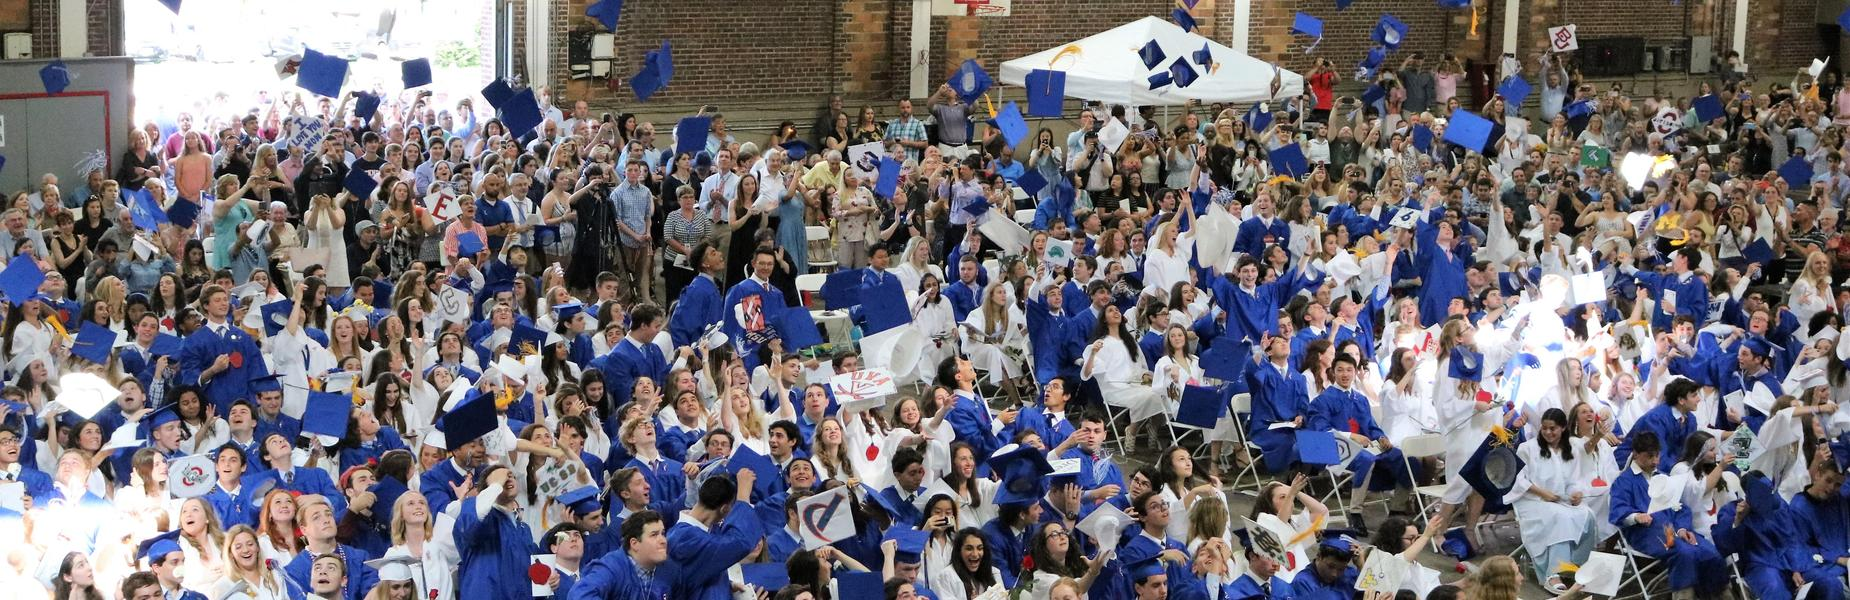 Photo of WHS Class of 2019 throwing caps into air.